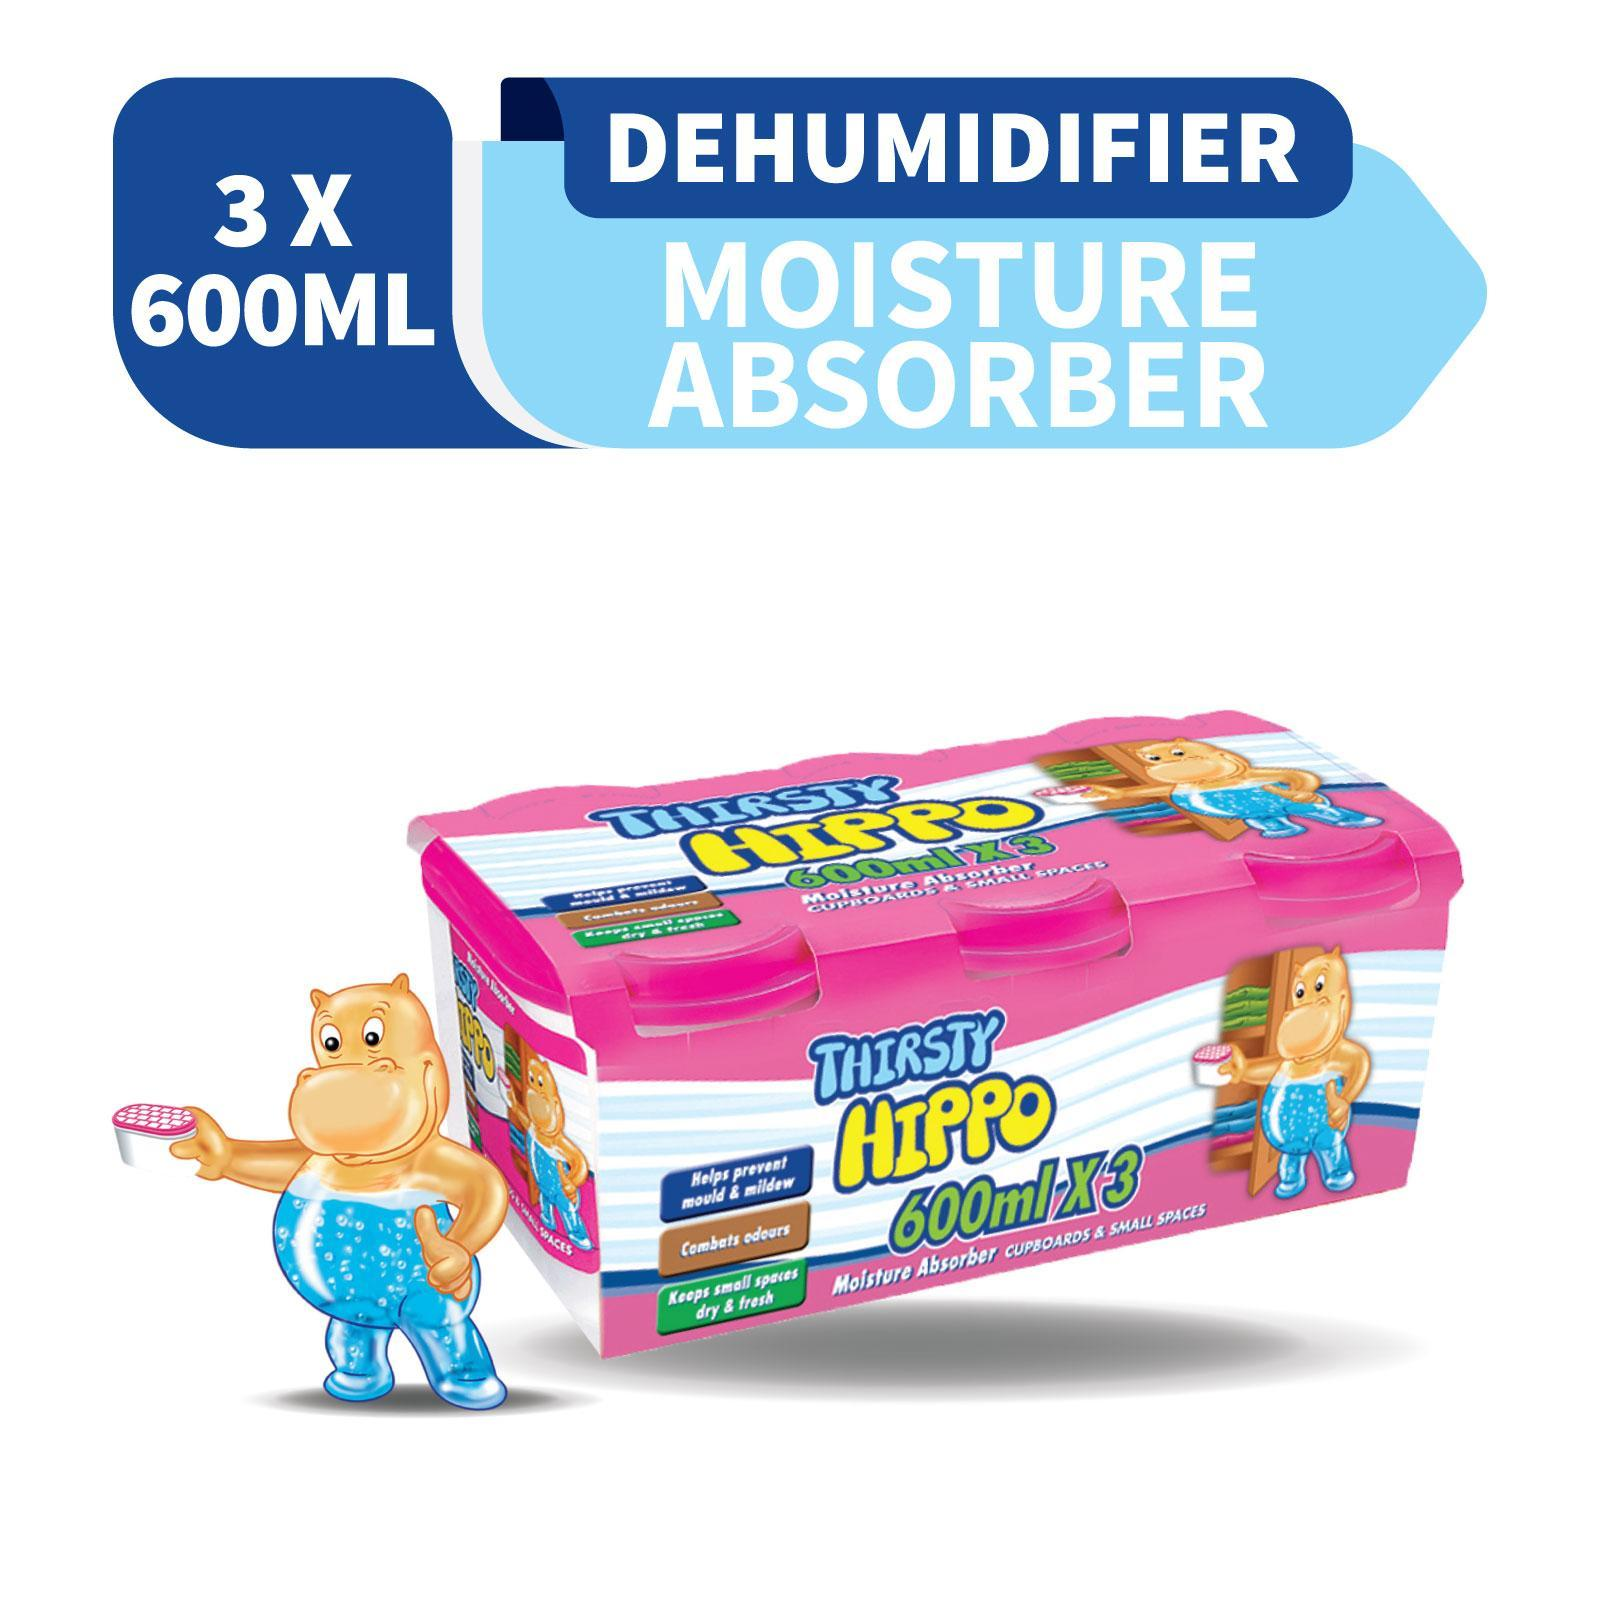 Thirsty Hippo Cupboards and Small Spaces Moisture Absorber